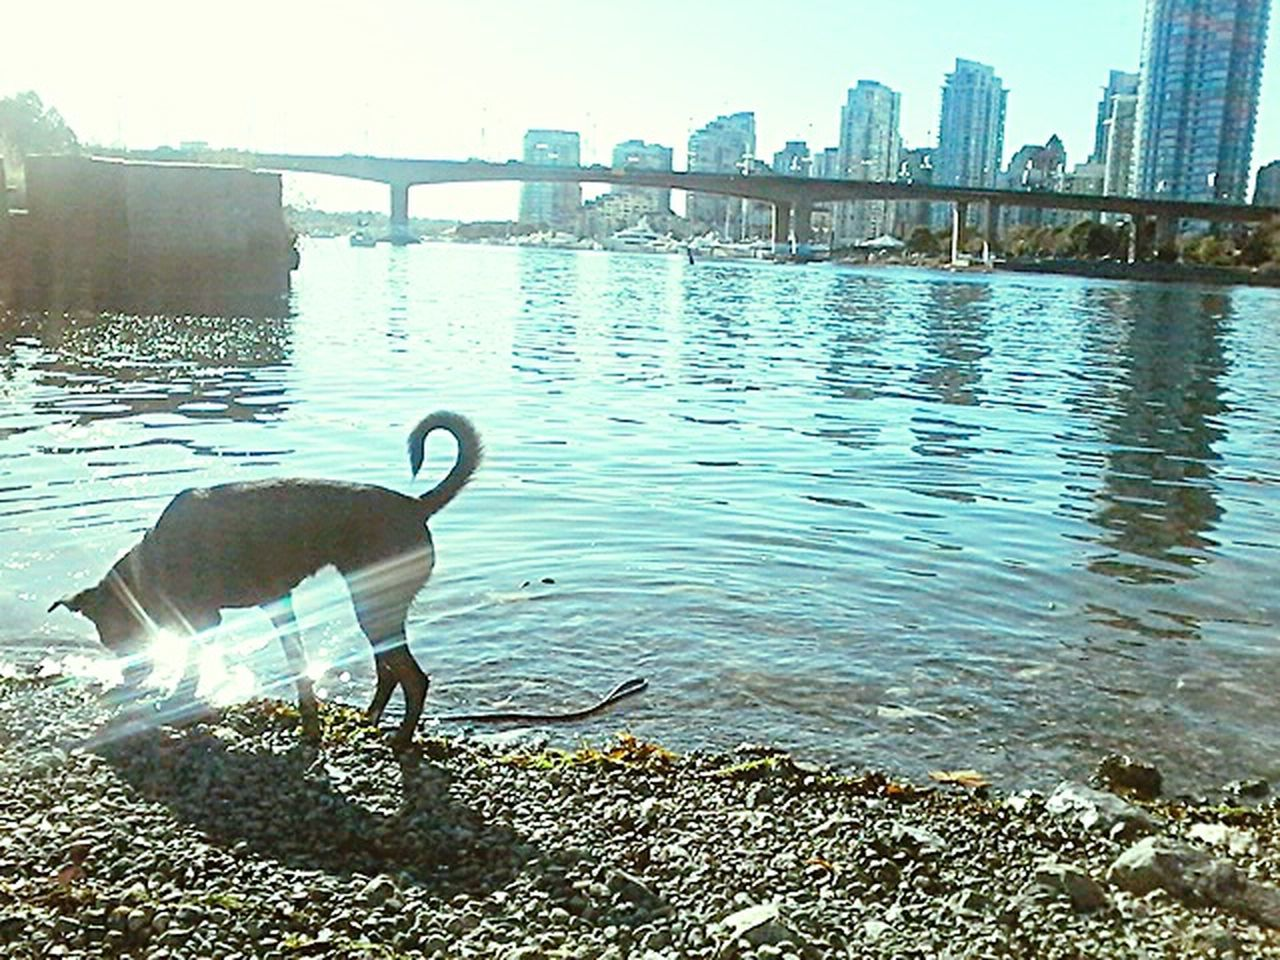 when we went in Vancouver in 2015  my Dog and I ! Water Cityscape No People Animal Themes Outdoors EyeEm Nature Lover EyeEm Gallery Rockies Mountains 2015memories Travel EyeEm Travel Photography EyeEm Vision Canada Coast To Coast Travel Destinations City Life Travel Photography Mountain Nature Nature EyeEm Dogs In The World EyeEm Dog Dogs Of EyeEm